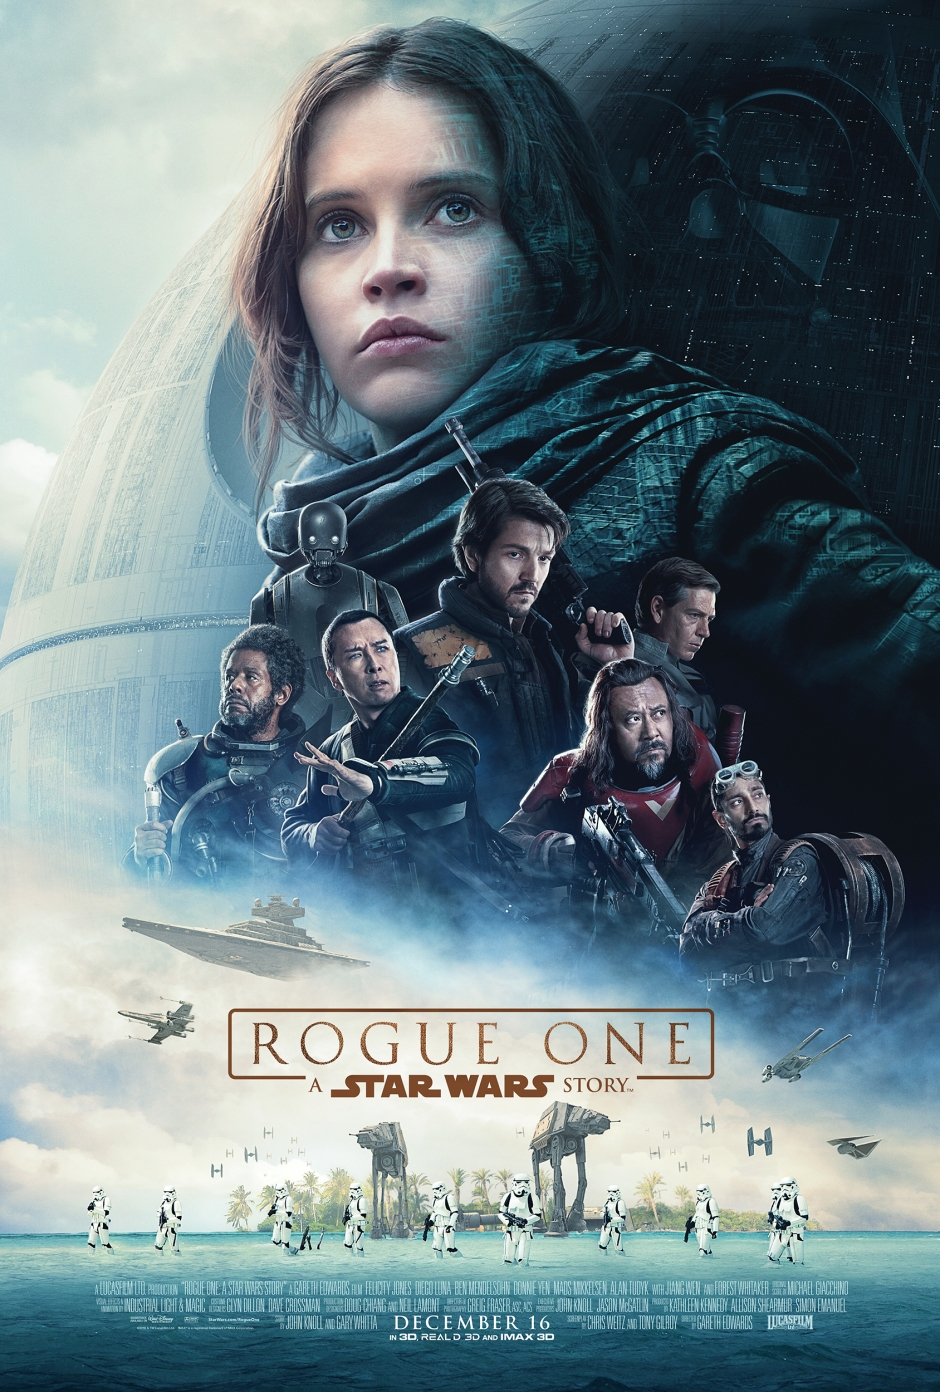 rogue-one-a-star-wars-story-theatrical-poster_1688